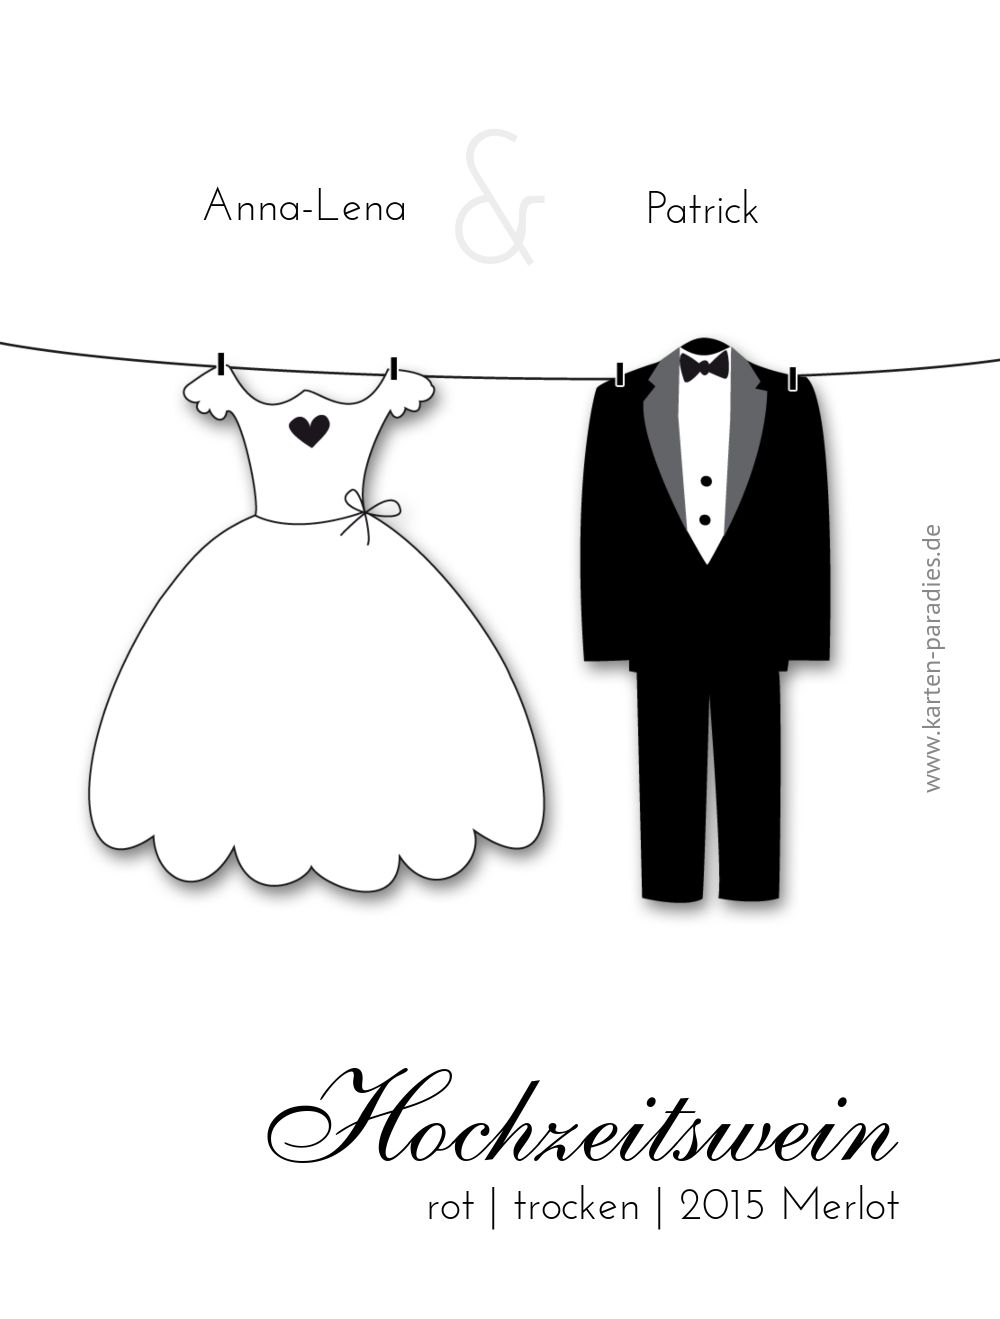 Ansicht 2 - Hochzeit Flaschenetikett dress and suit